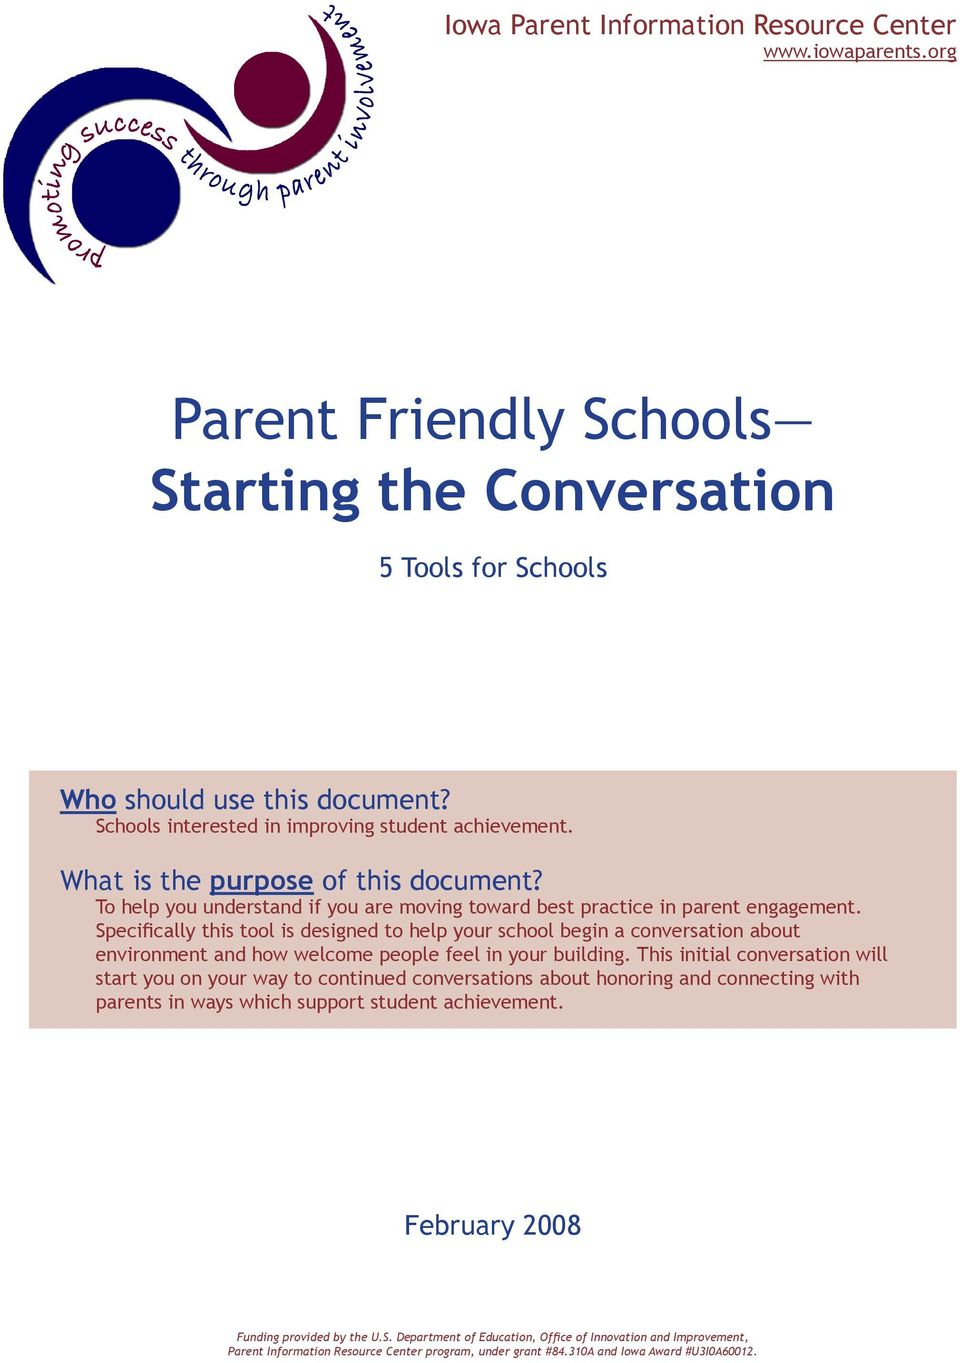 To help you understand if you are moving toward best practice in parent engagement.